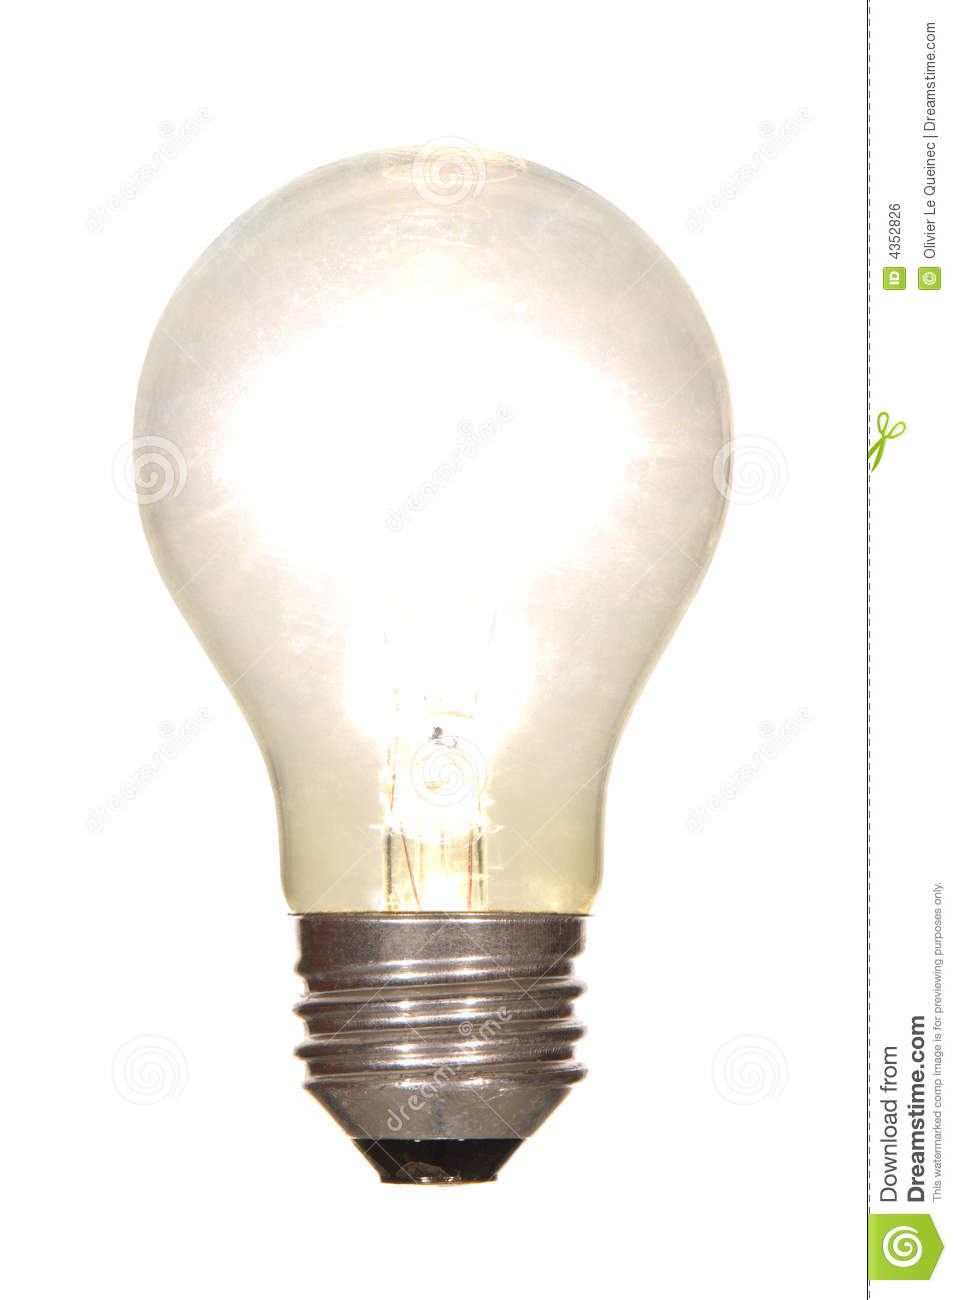 Lit Electric Light Bulb Glowing Bright Isolated Stock Photo Image 4352826